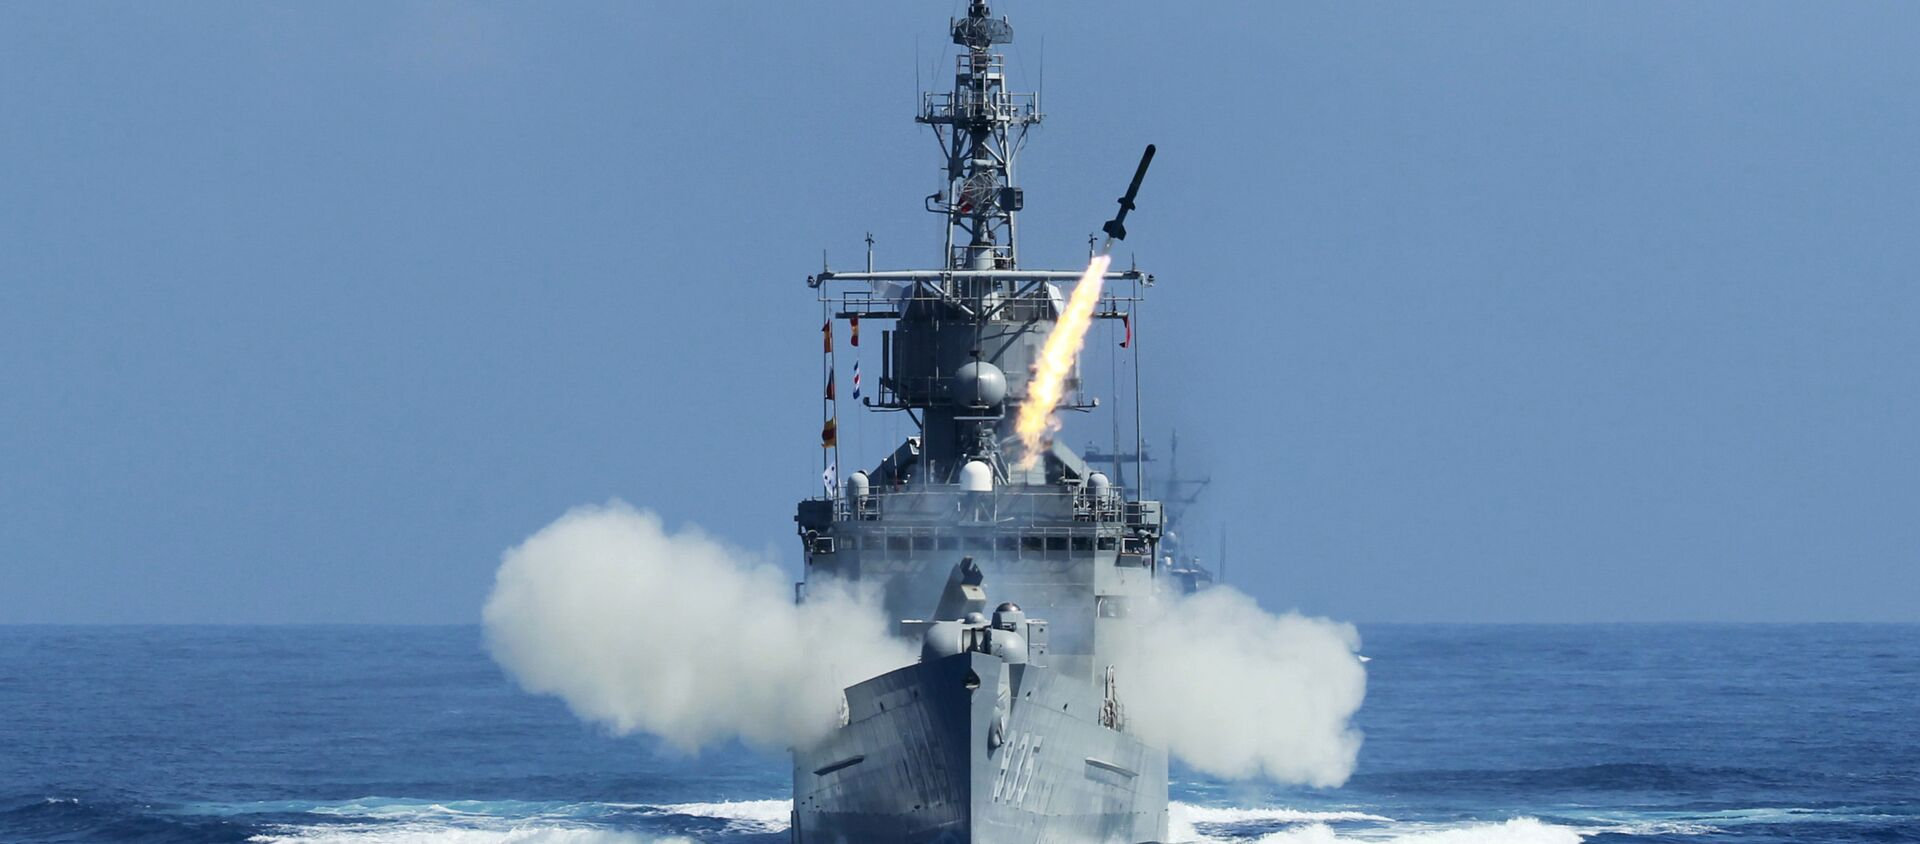 Taiwan Navy's Perry-class frigate launches an ASROC (anti-submarine rocket) during the annual Han Kuang military exercises. - Sputnik Italia, 1920, 11.04.2021